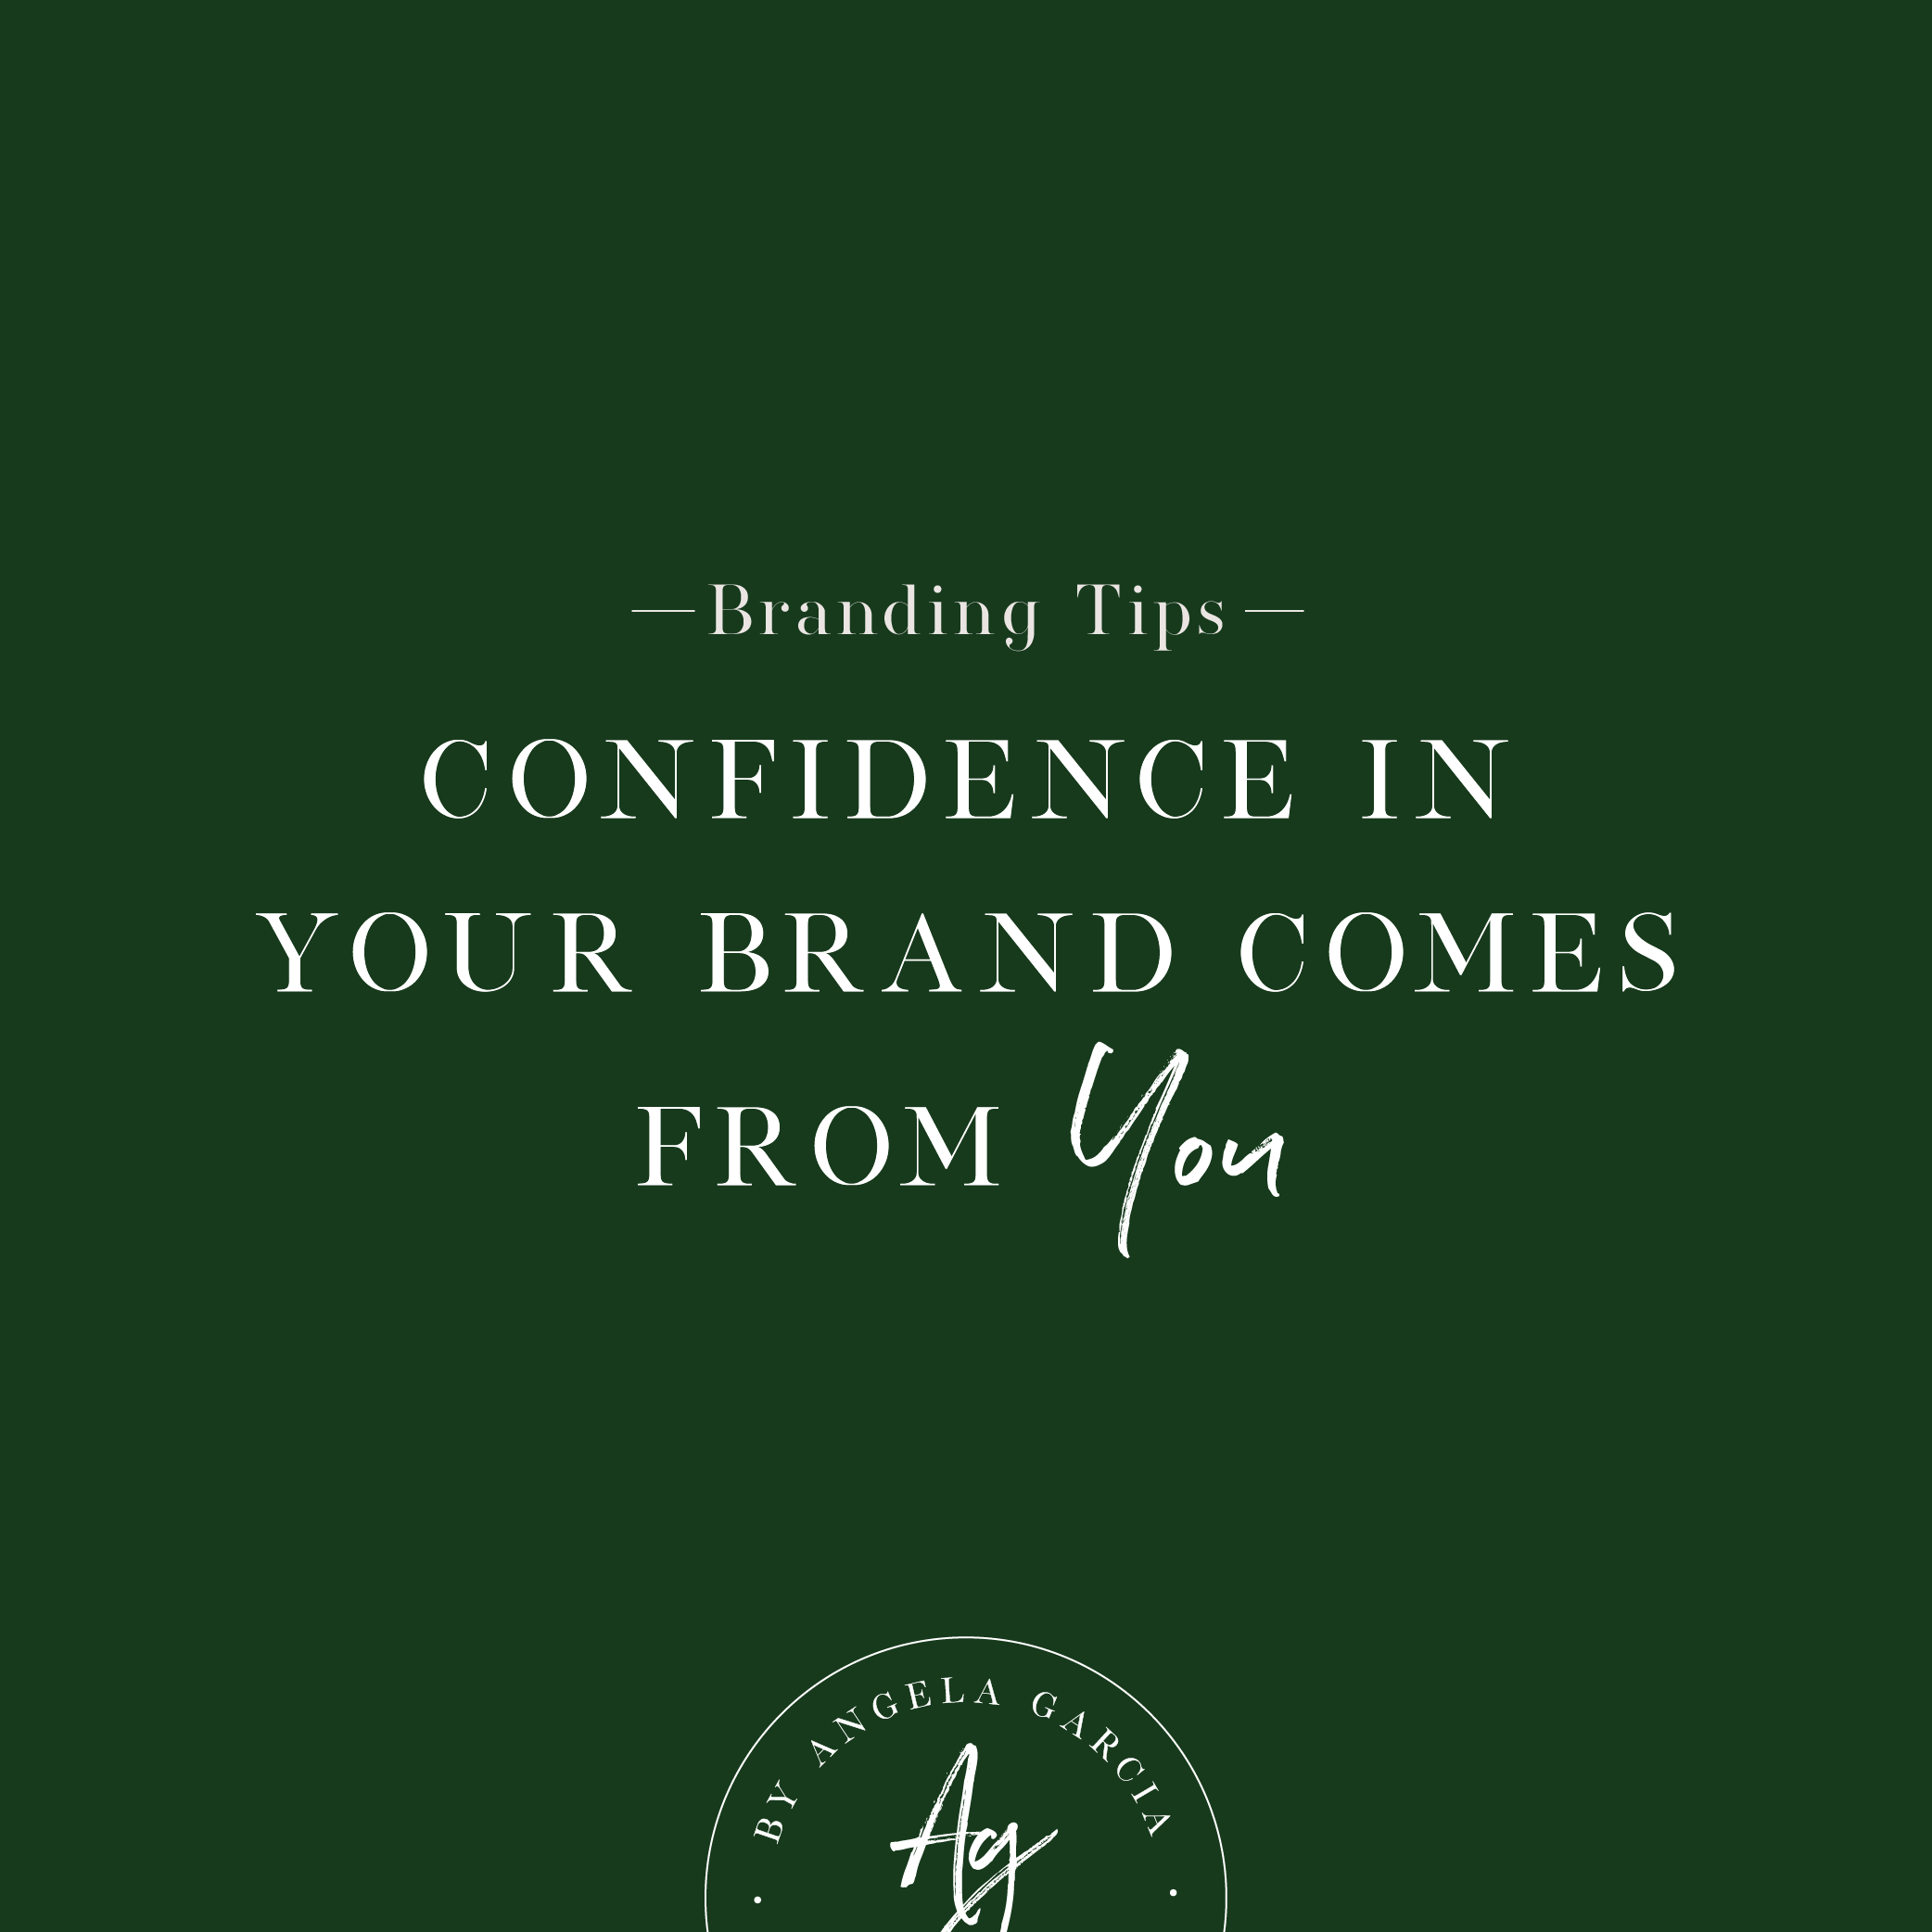 Confidence in your brand comes from YOU